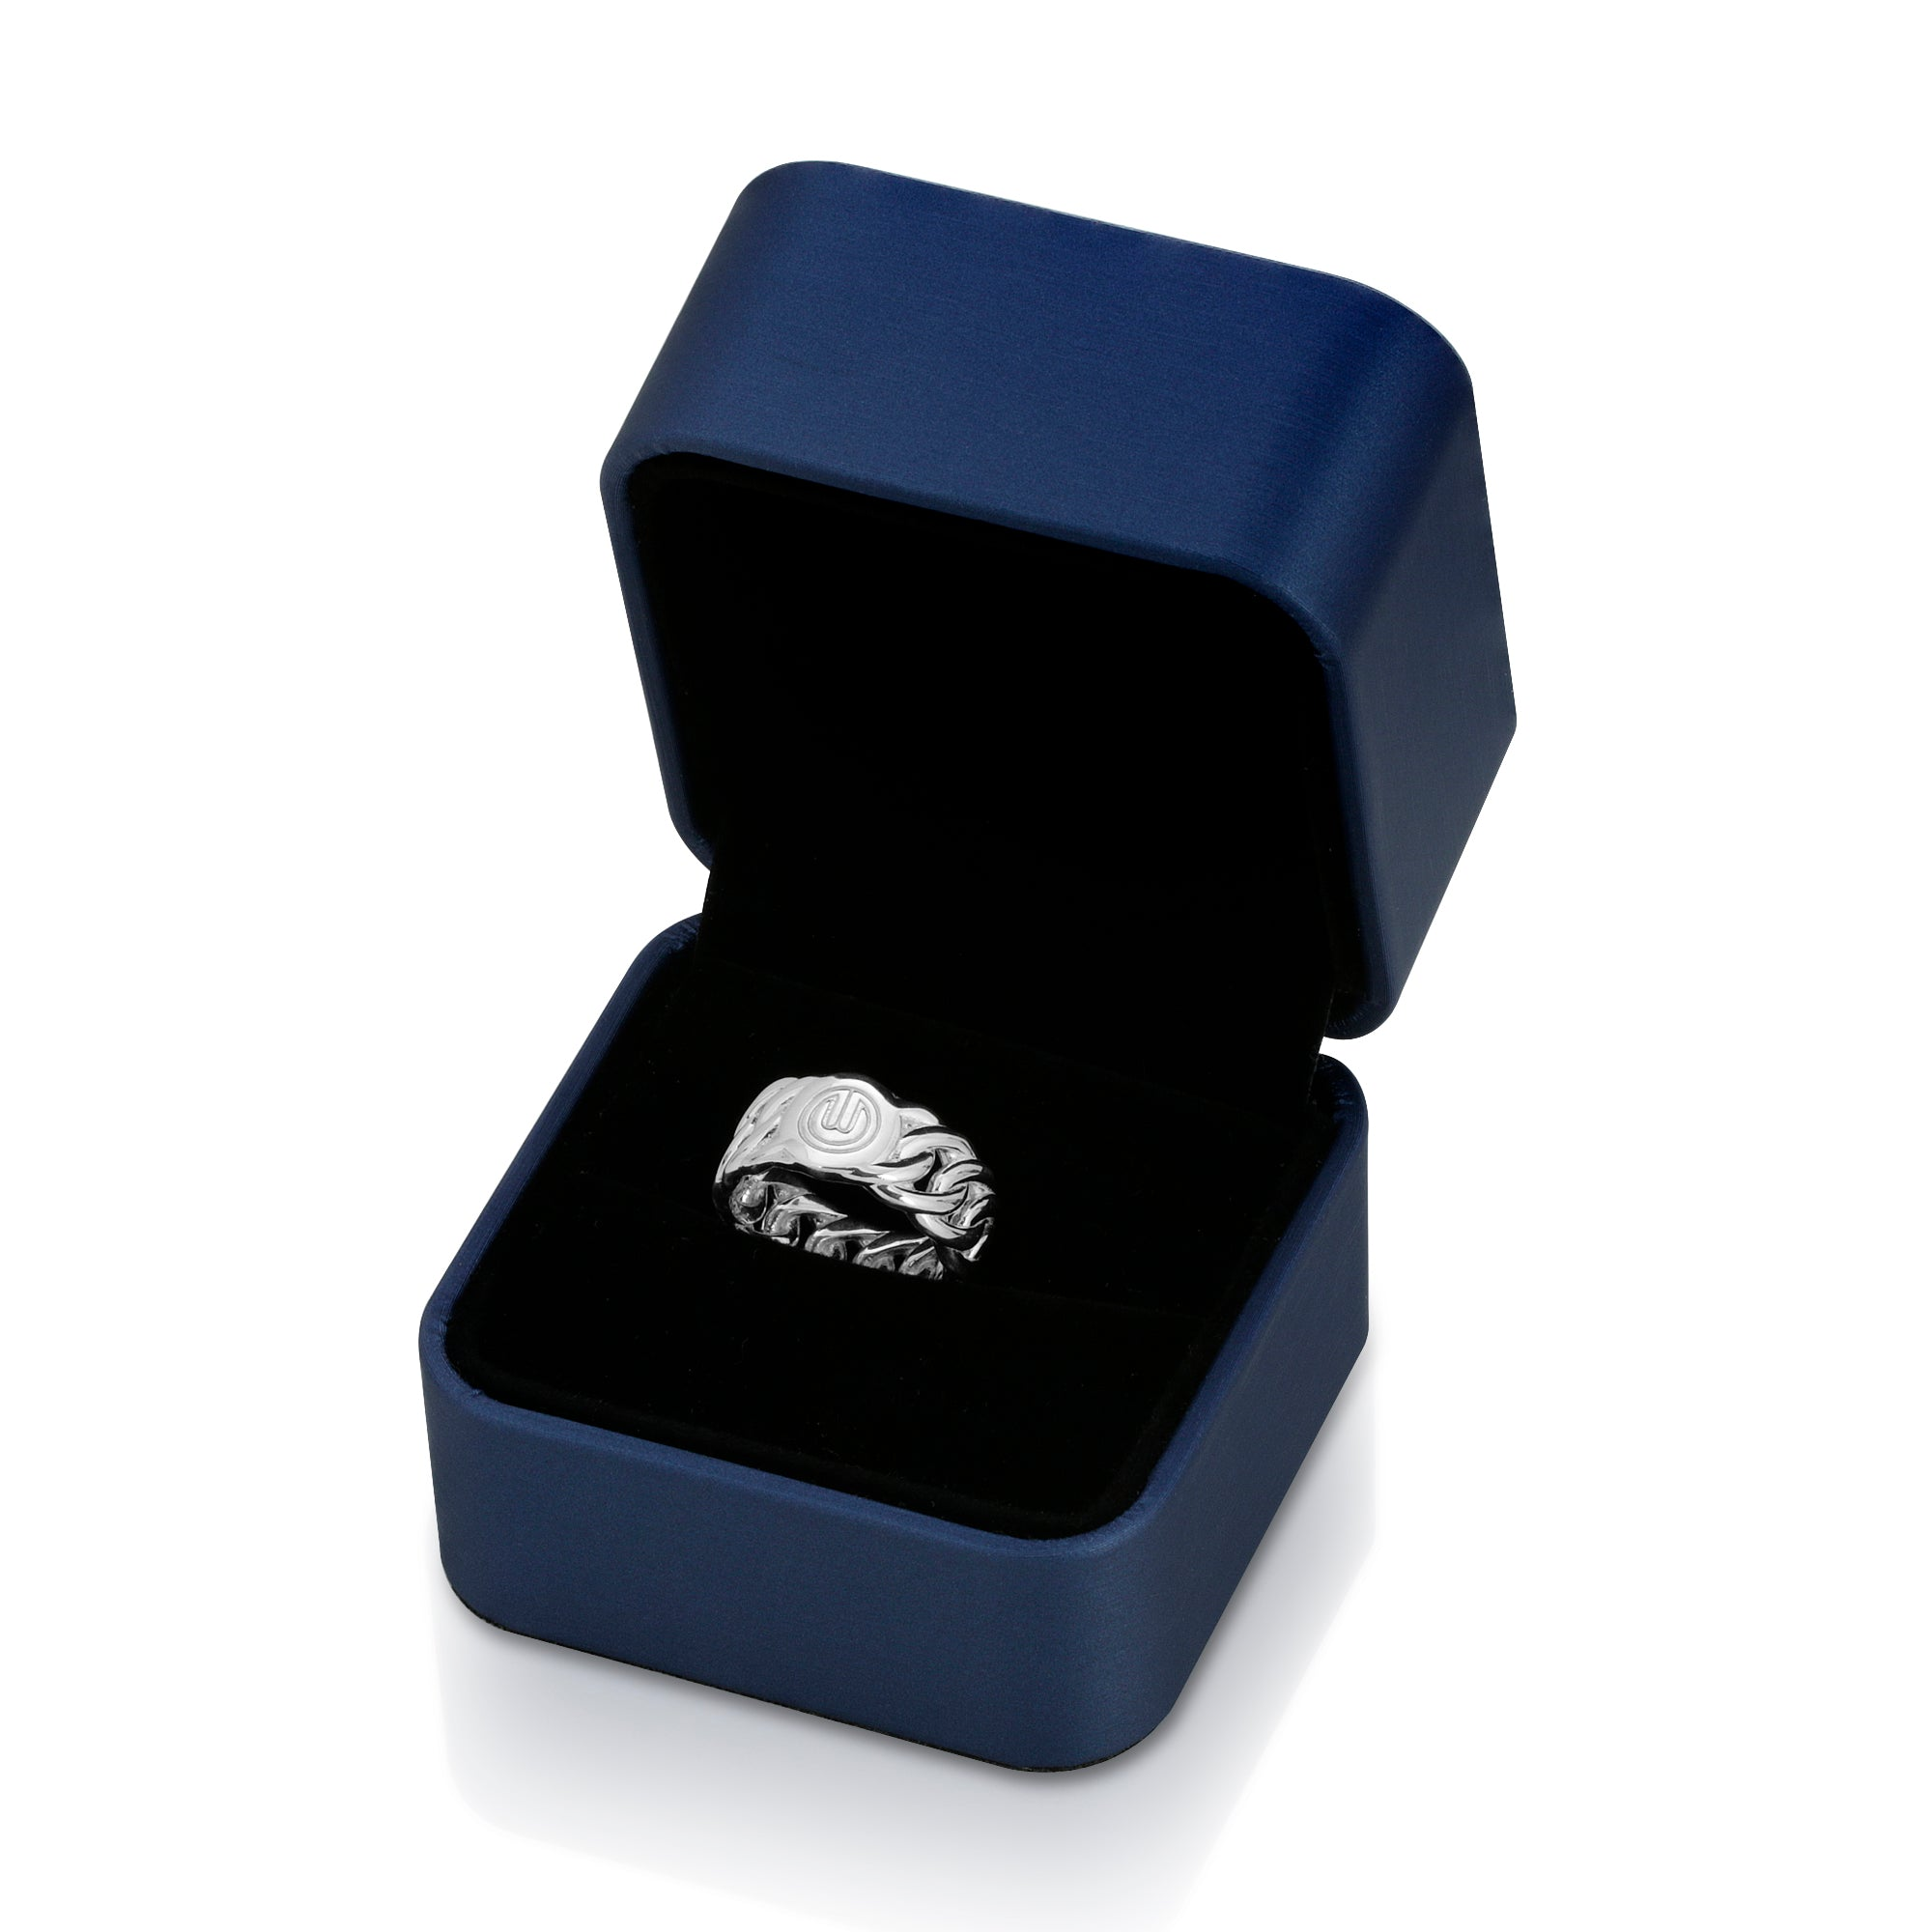 The W Brothers 925 Sterling Silver Cuban Ring crafted in the highest quality of 925 Sterling Silver for men and women fashion accessories. Elegant modern icy look for the lowest price. Shop your look only at thewbros.com